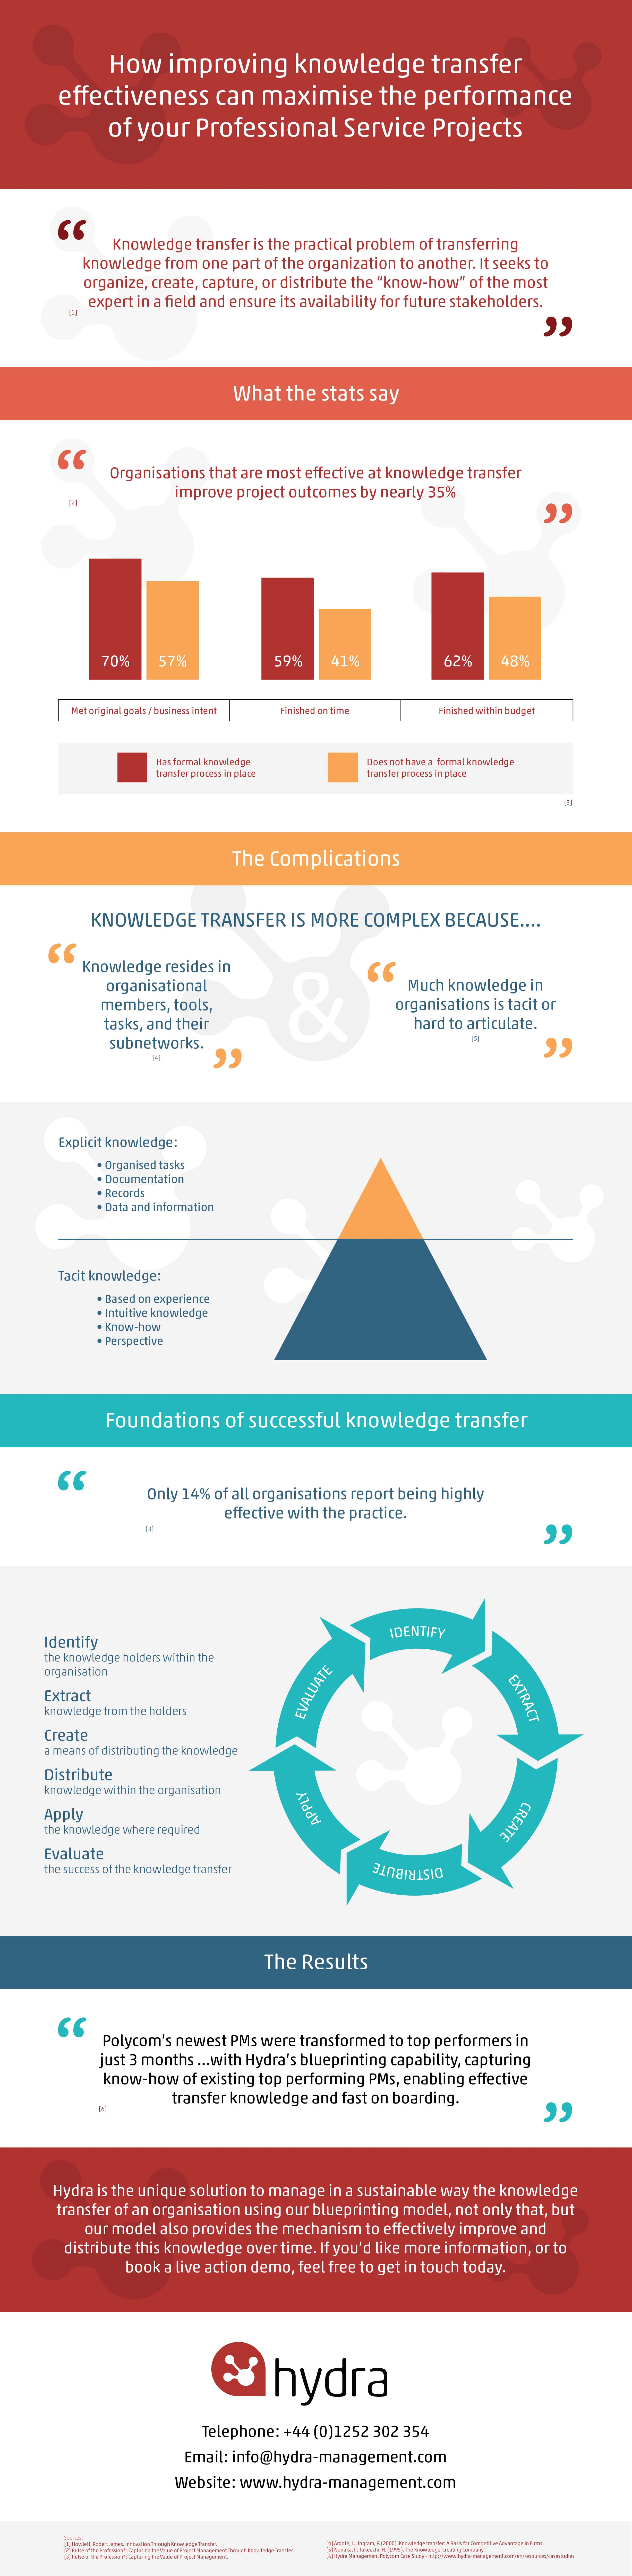 [Infographic] Improving Knowledge Transfer Effectiveness